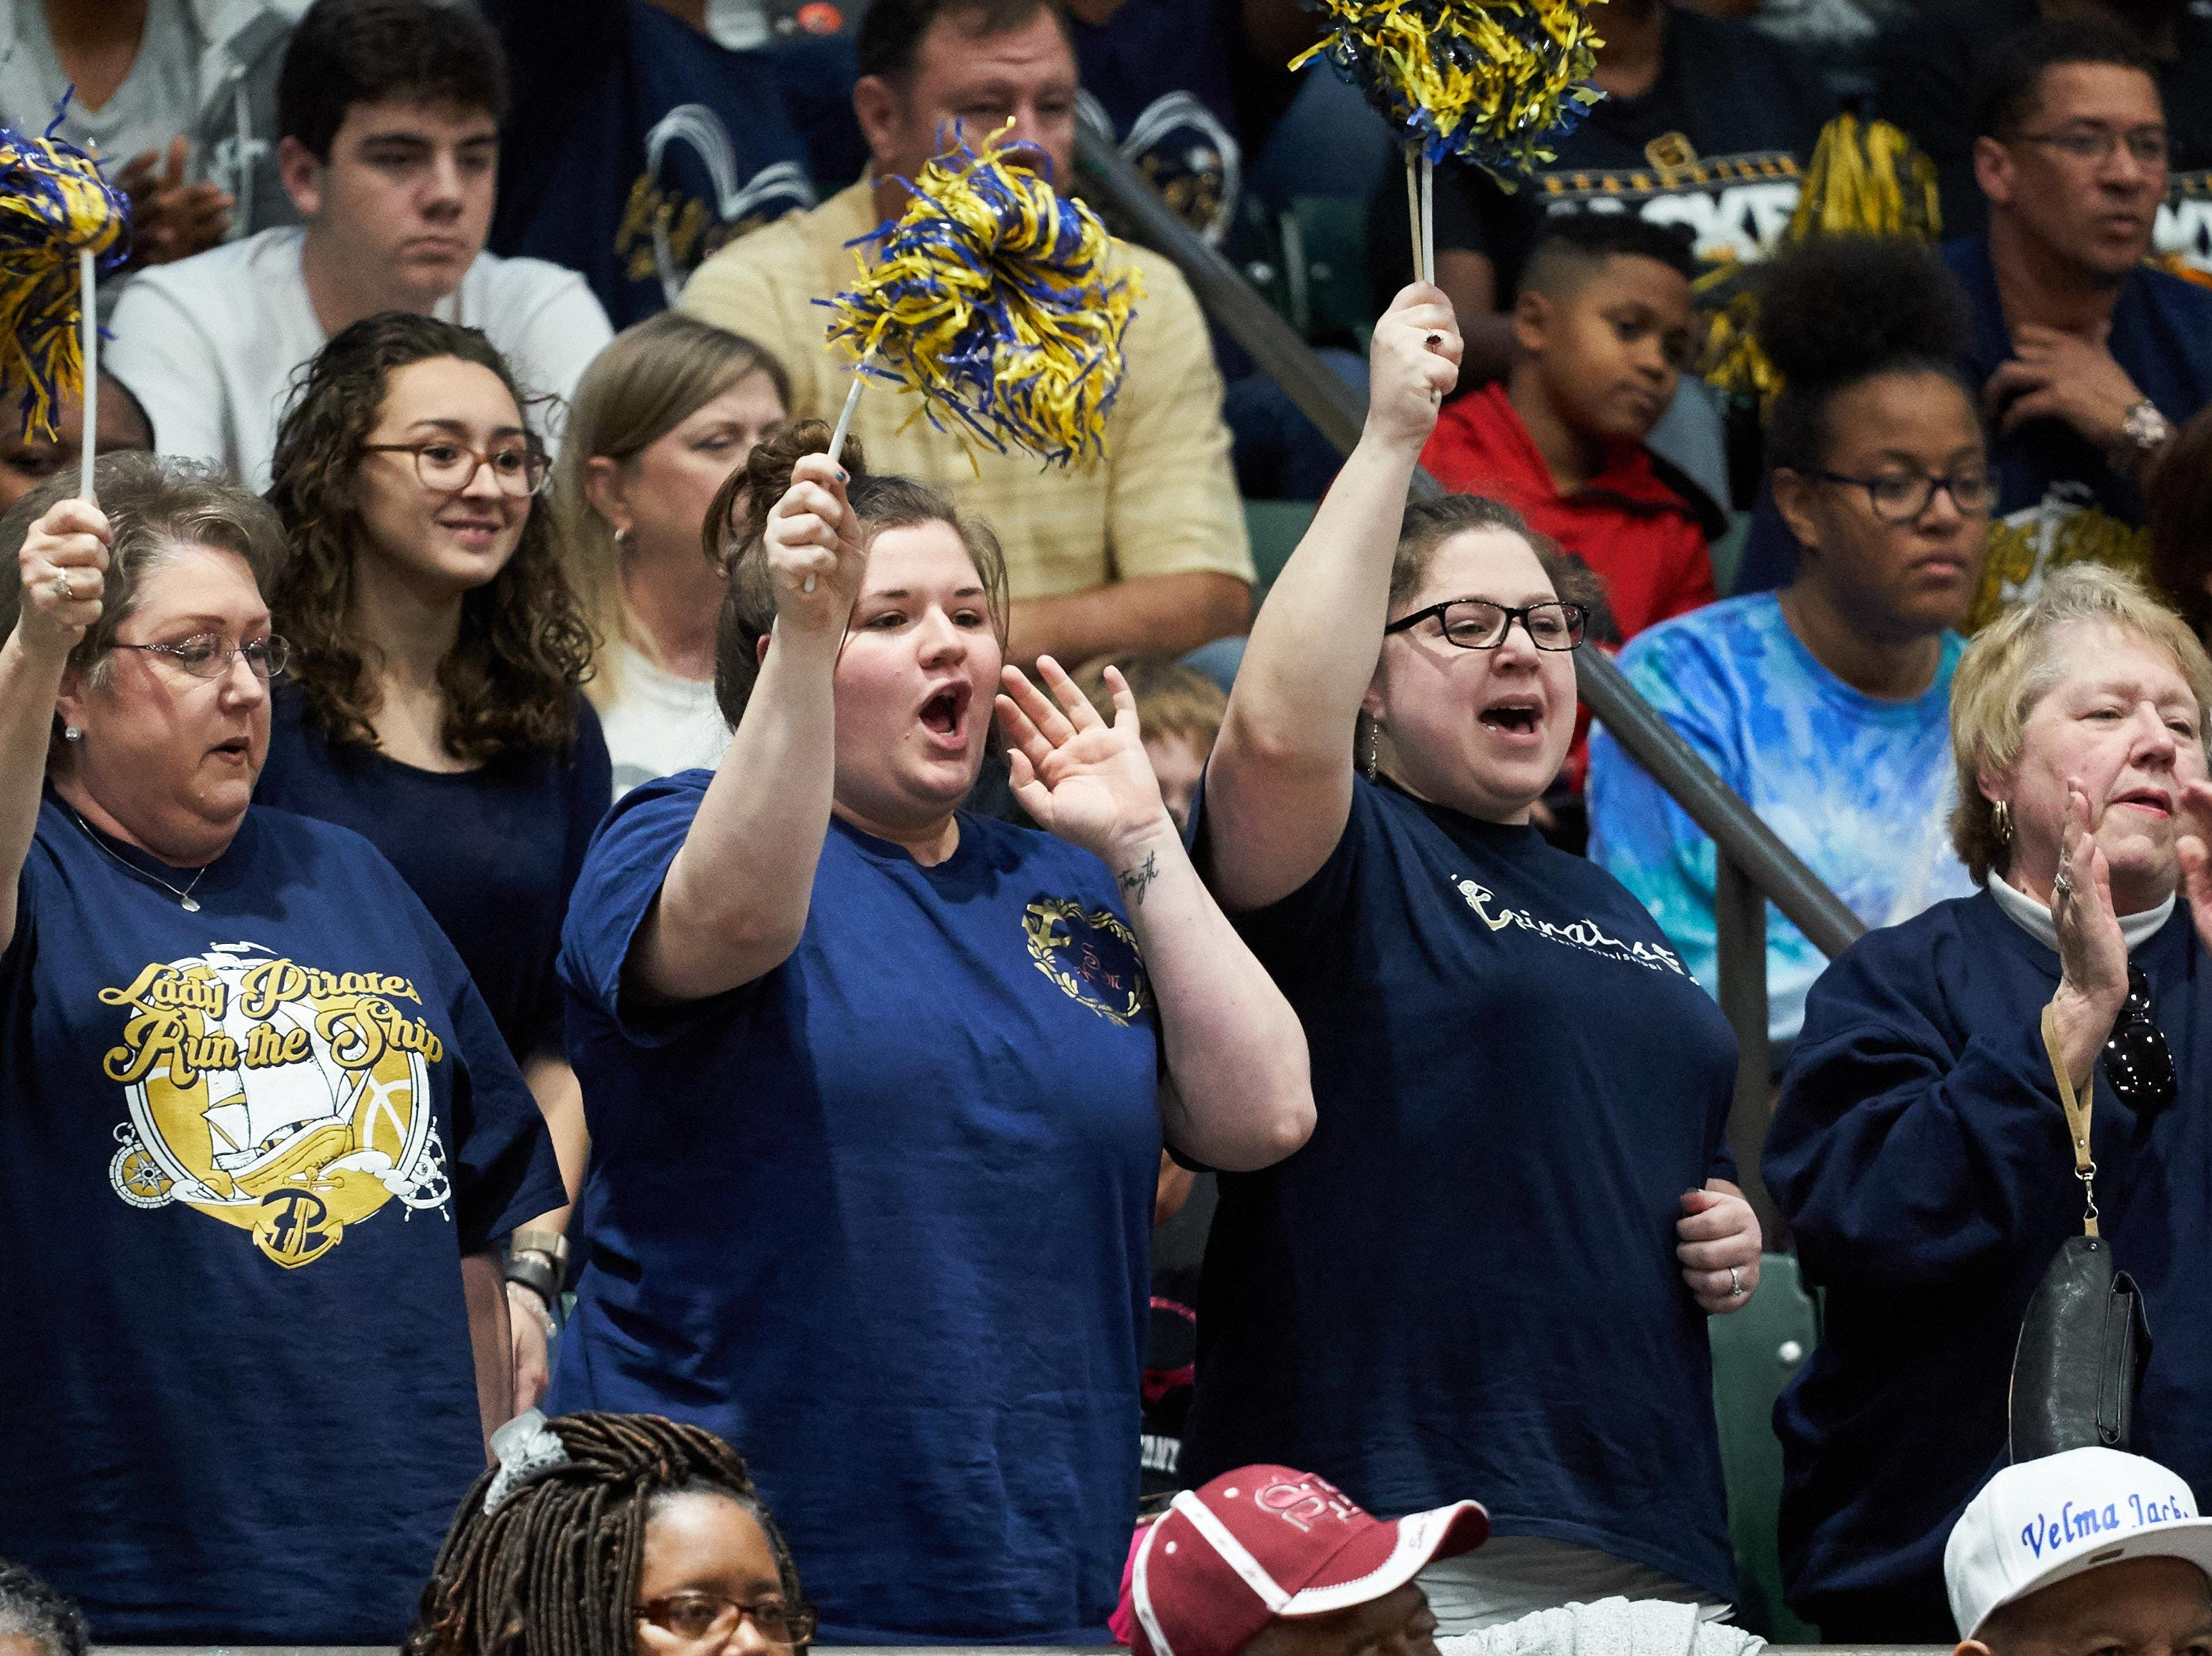 Pearl fans cheer during the MHSAA 6A Girls Basketball Championship Finals held at the Mississippi Coliseum in Jackson, MS, Saturday March 9th, 2019.(Bob Smith)